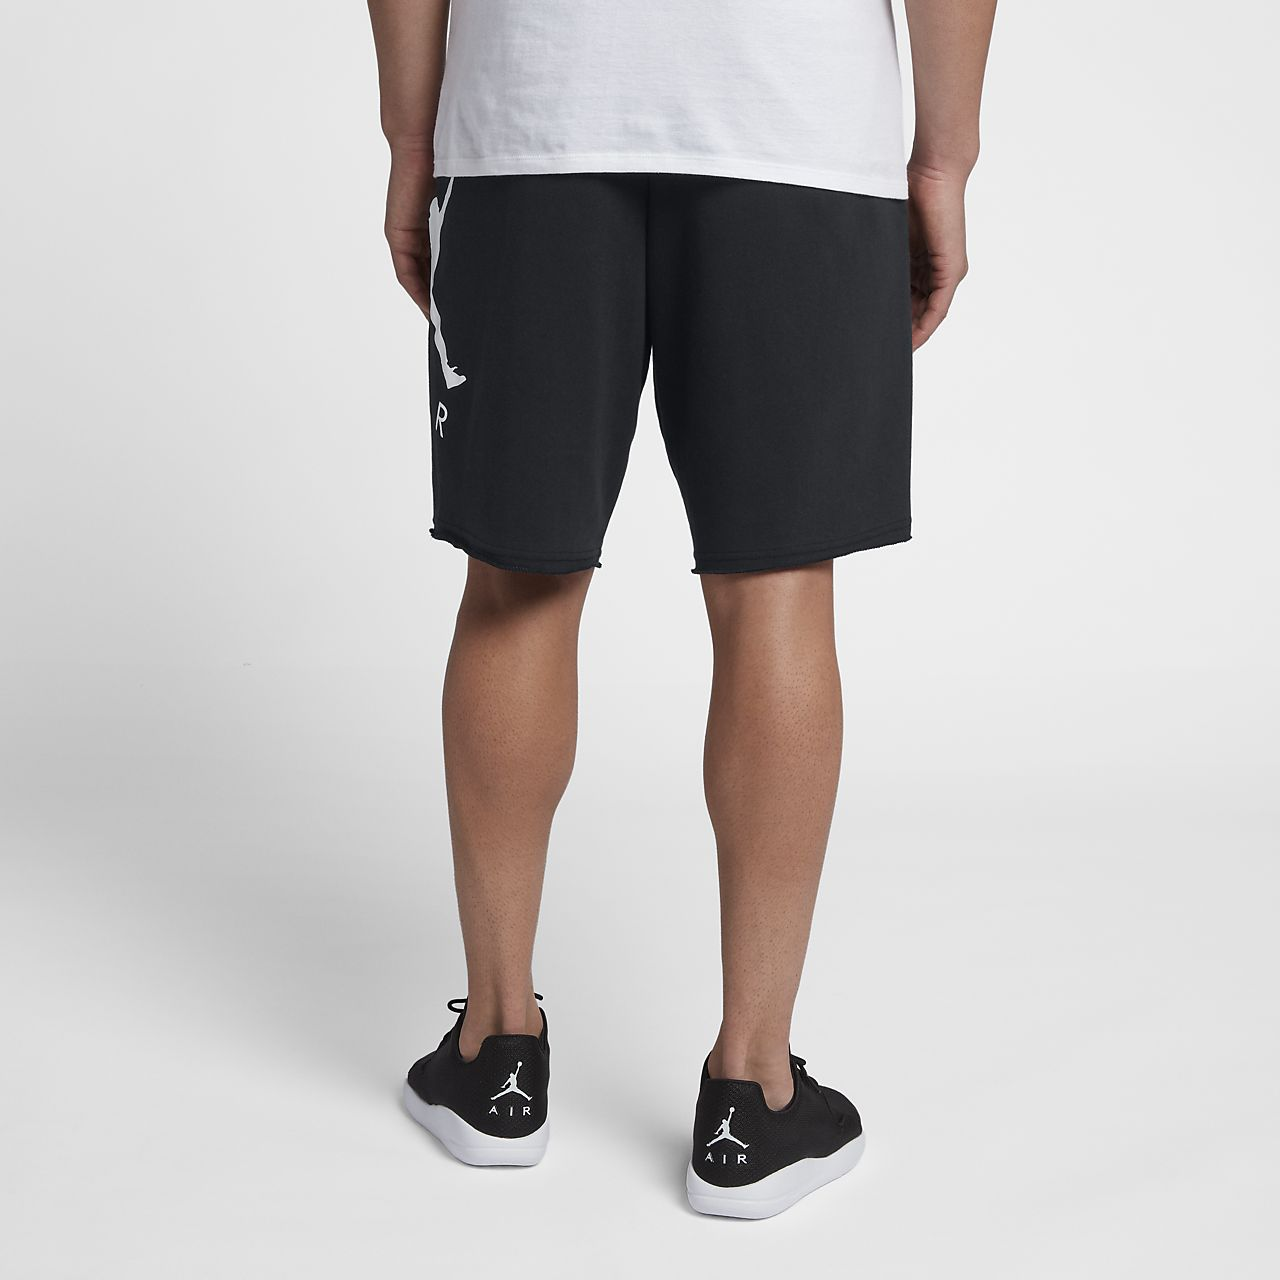 5c0f70ca987 Jordan Jumpman Air Men's Fleece Shorts. Nike.com IN